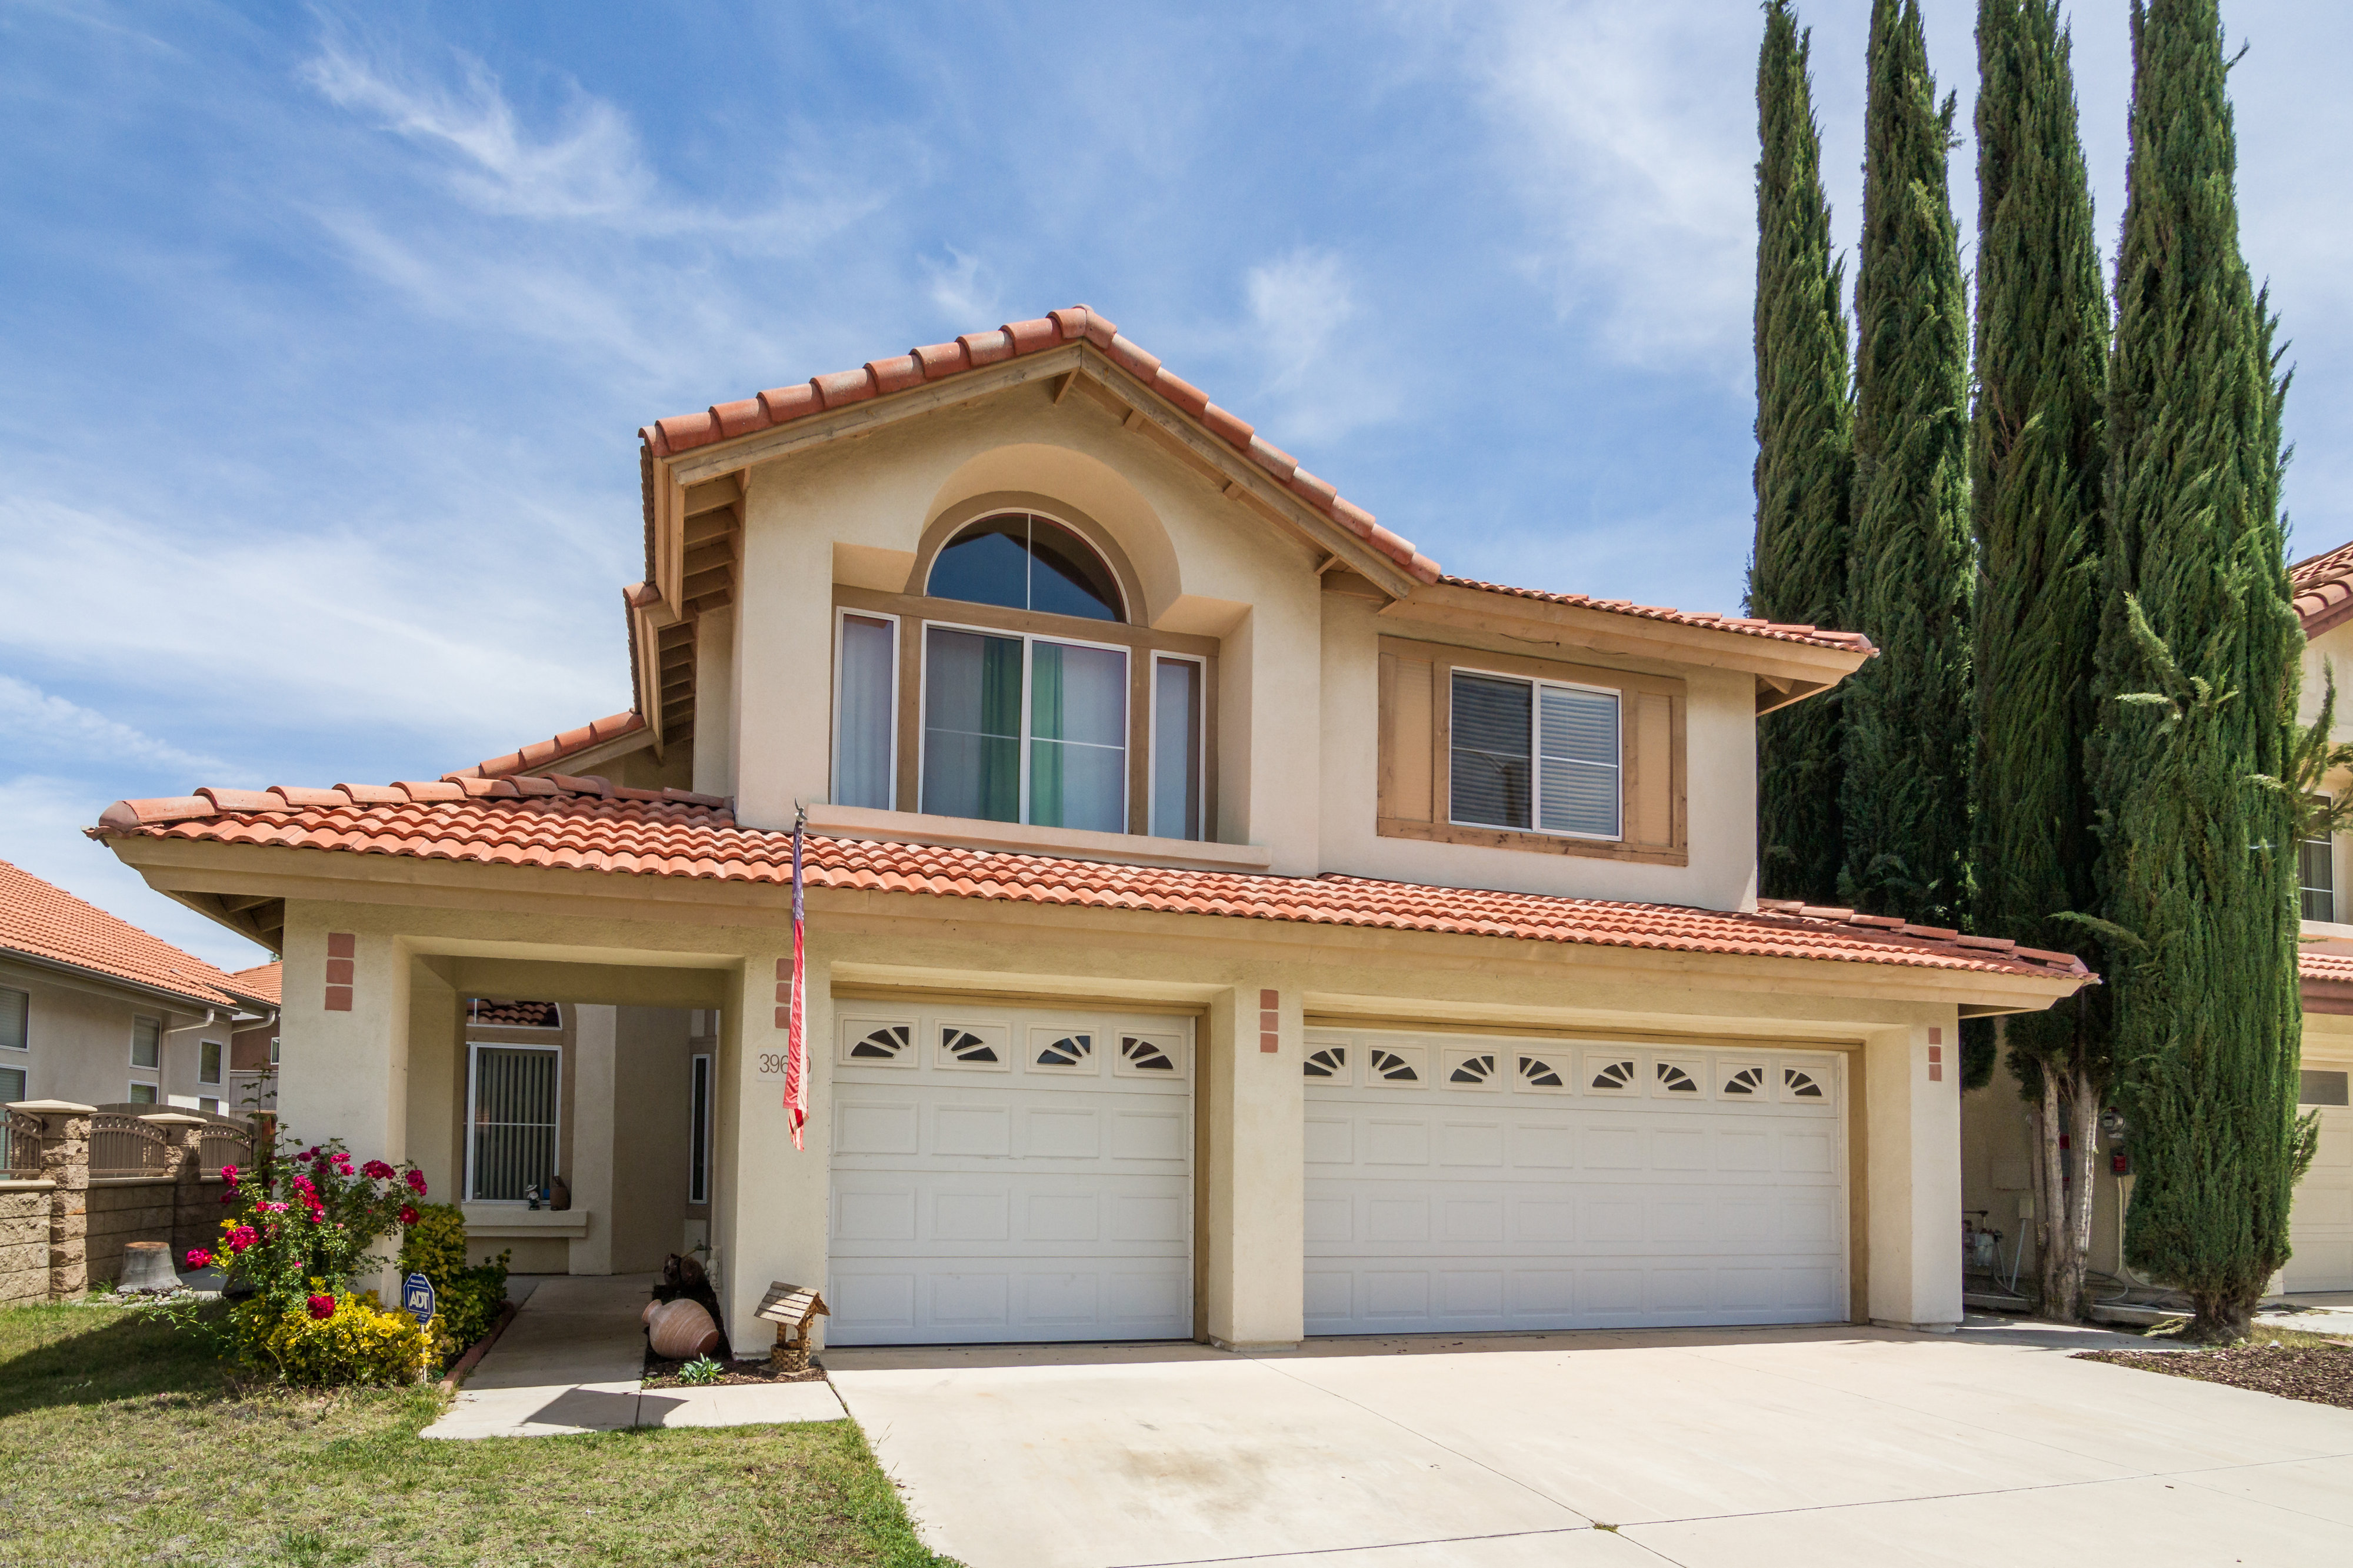 Murrieta home with temecula schools mitchell home sales for Mitchell homes price list